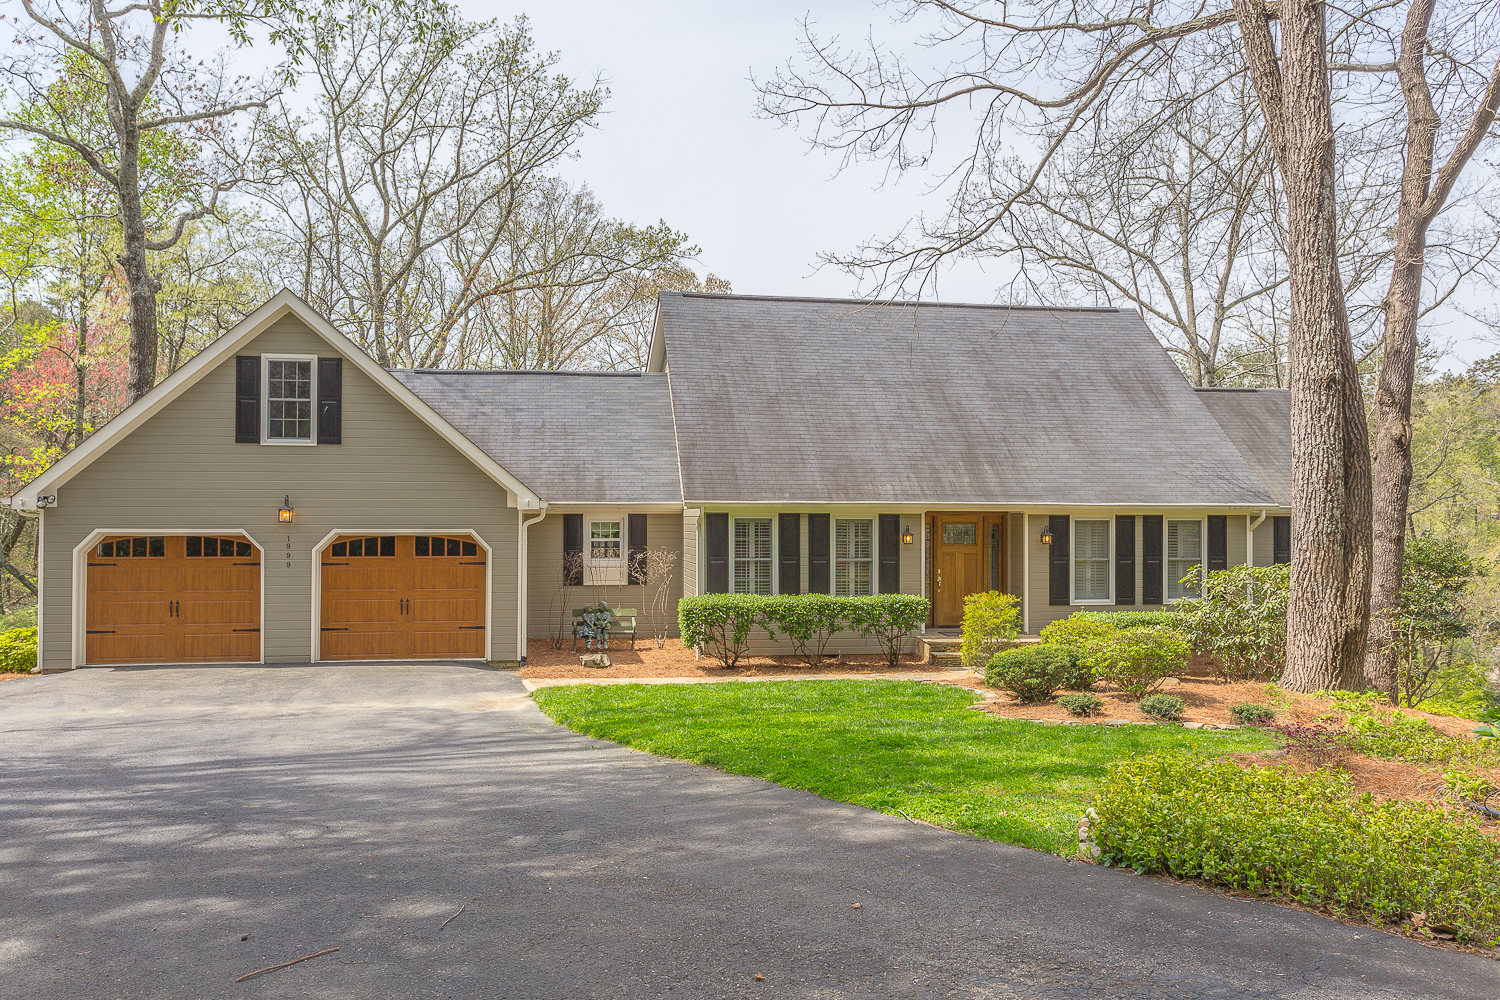 1999 Avalon Ave- Under Contract in 1 Day in North Chattanooga